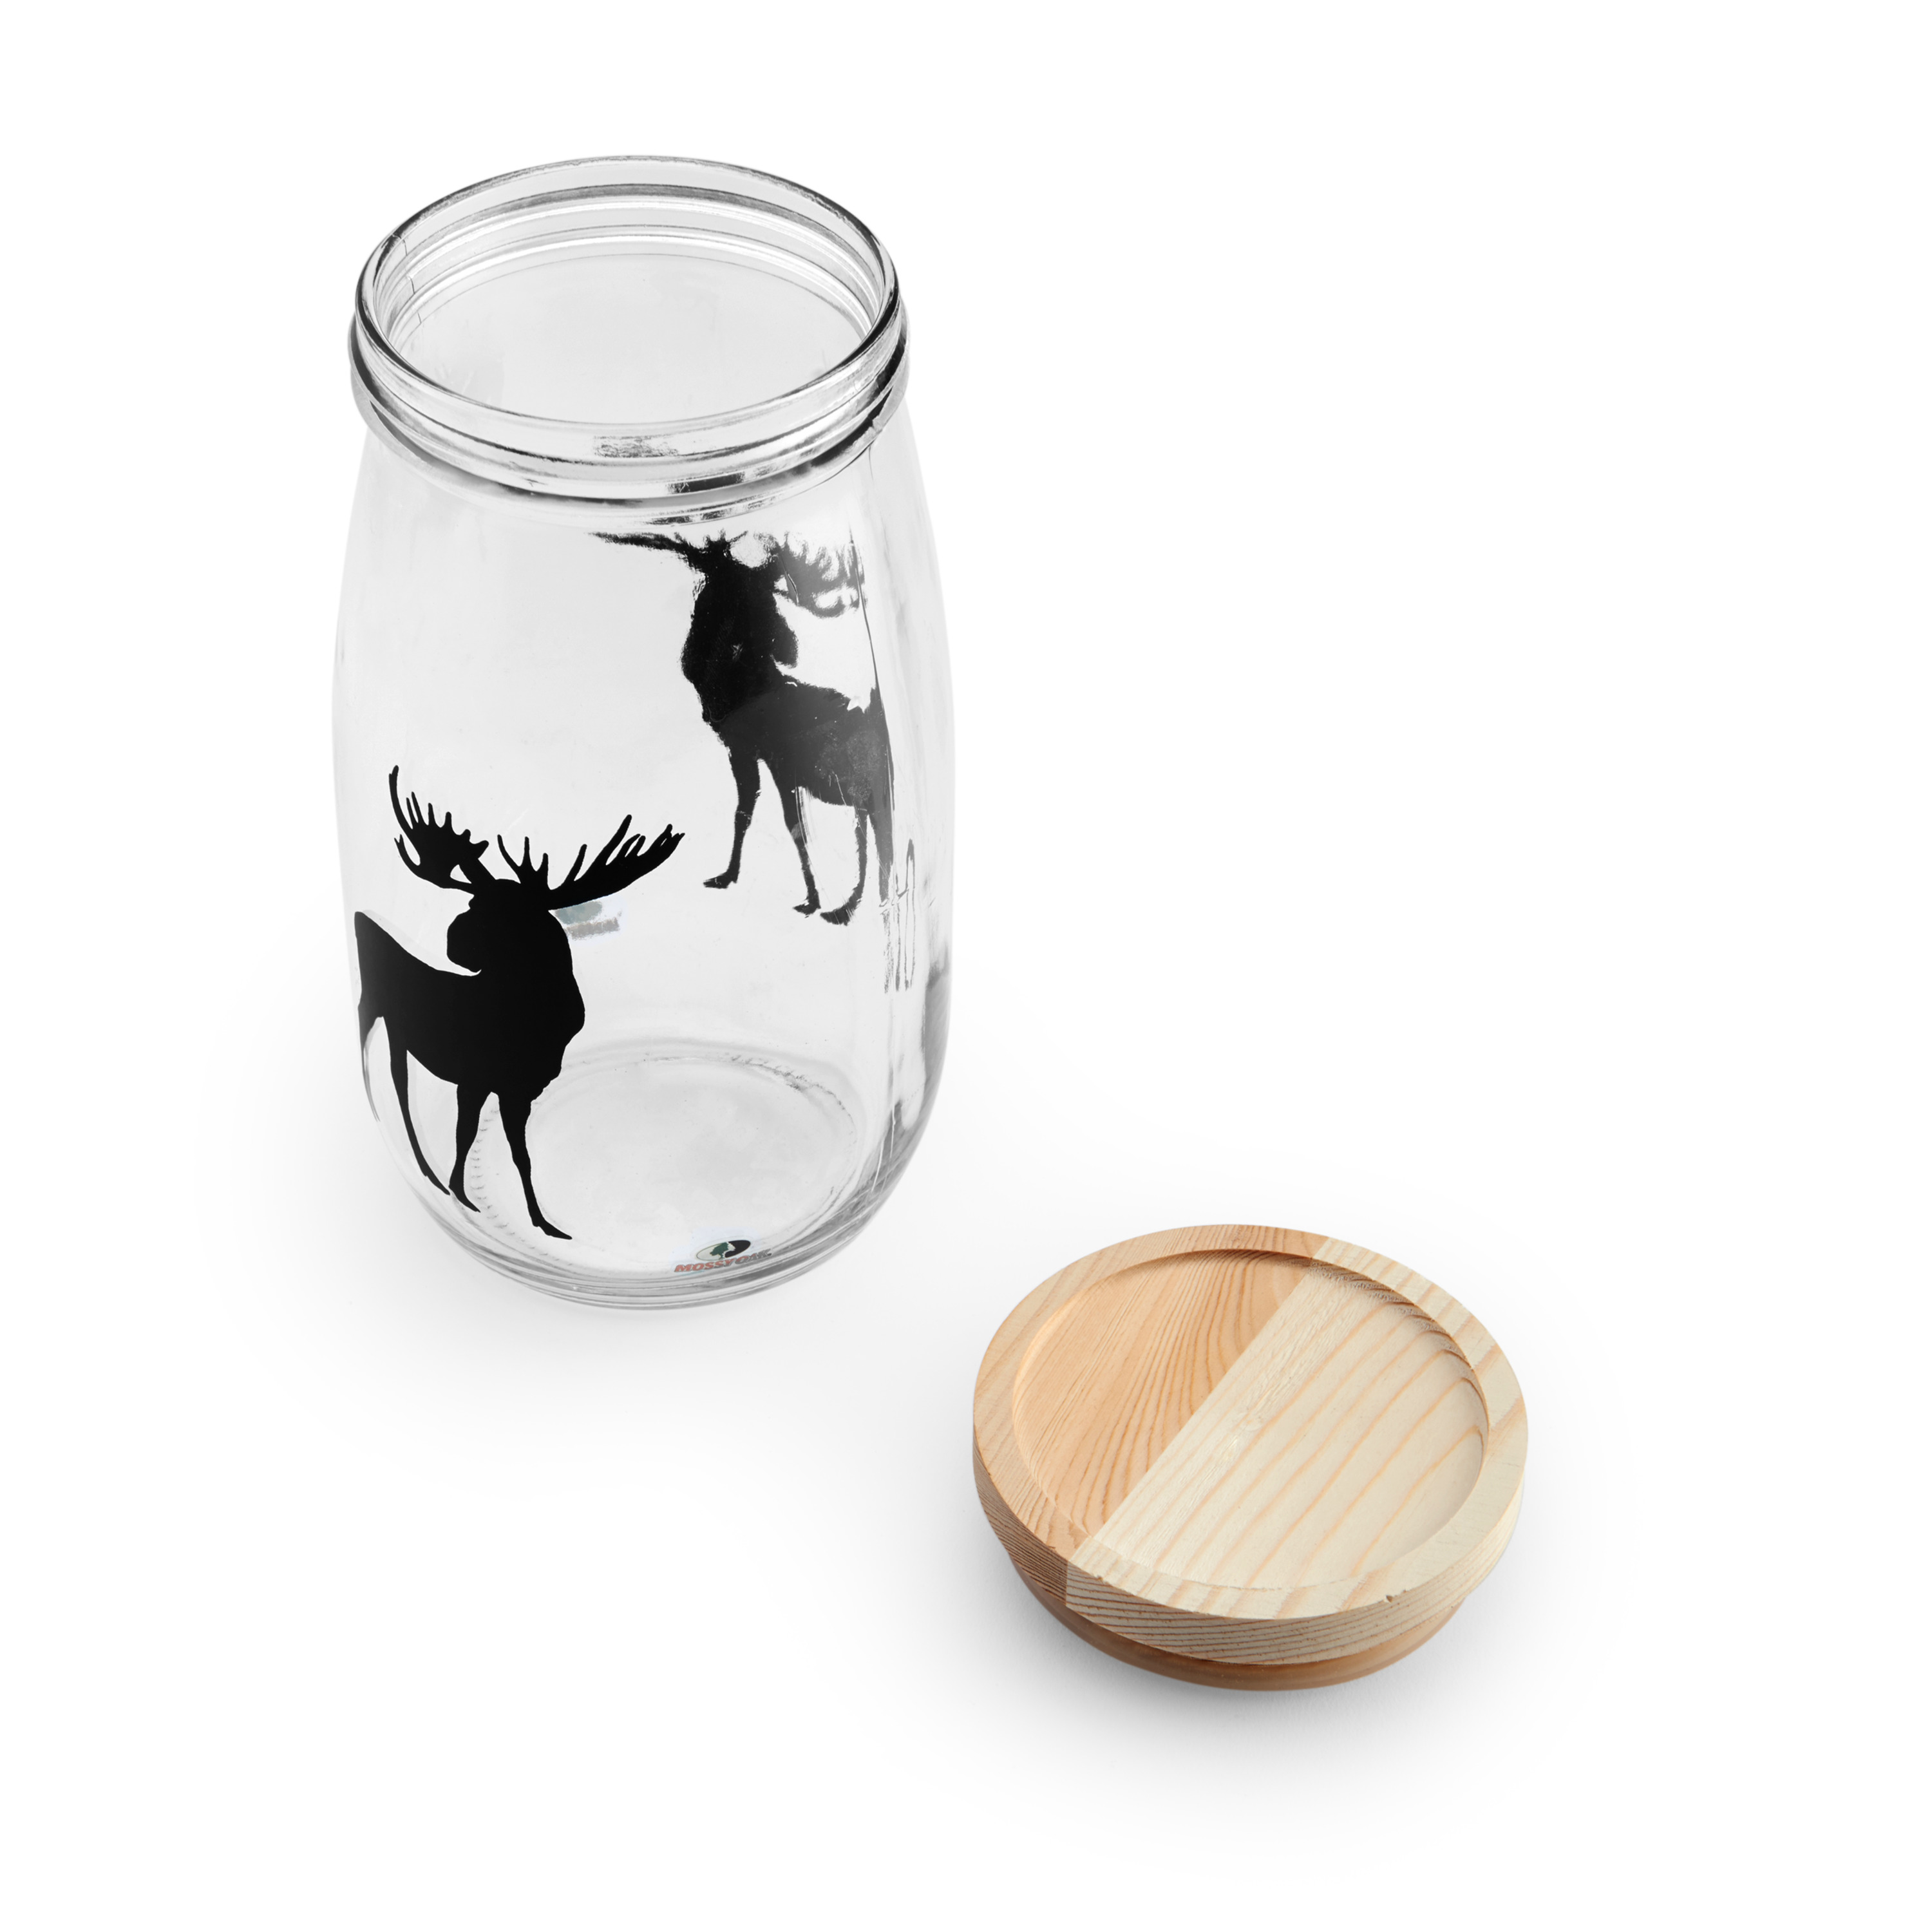 Mossy Oak Large Glass Canister With Wooden Lid Moose Decal